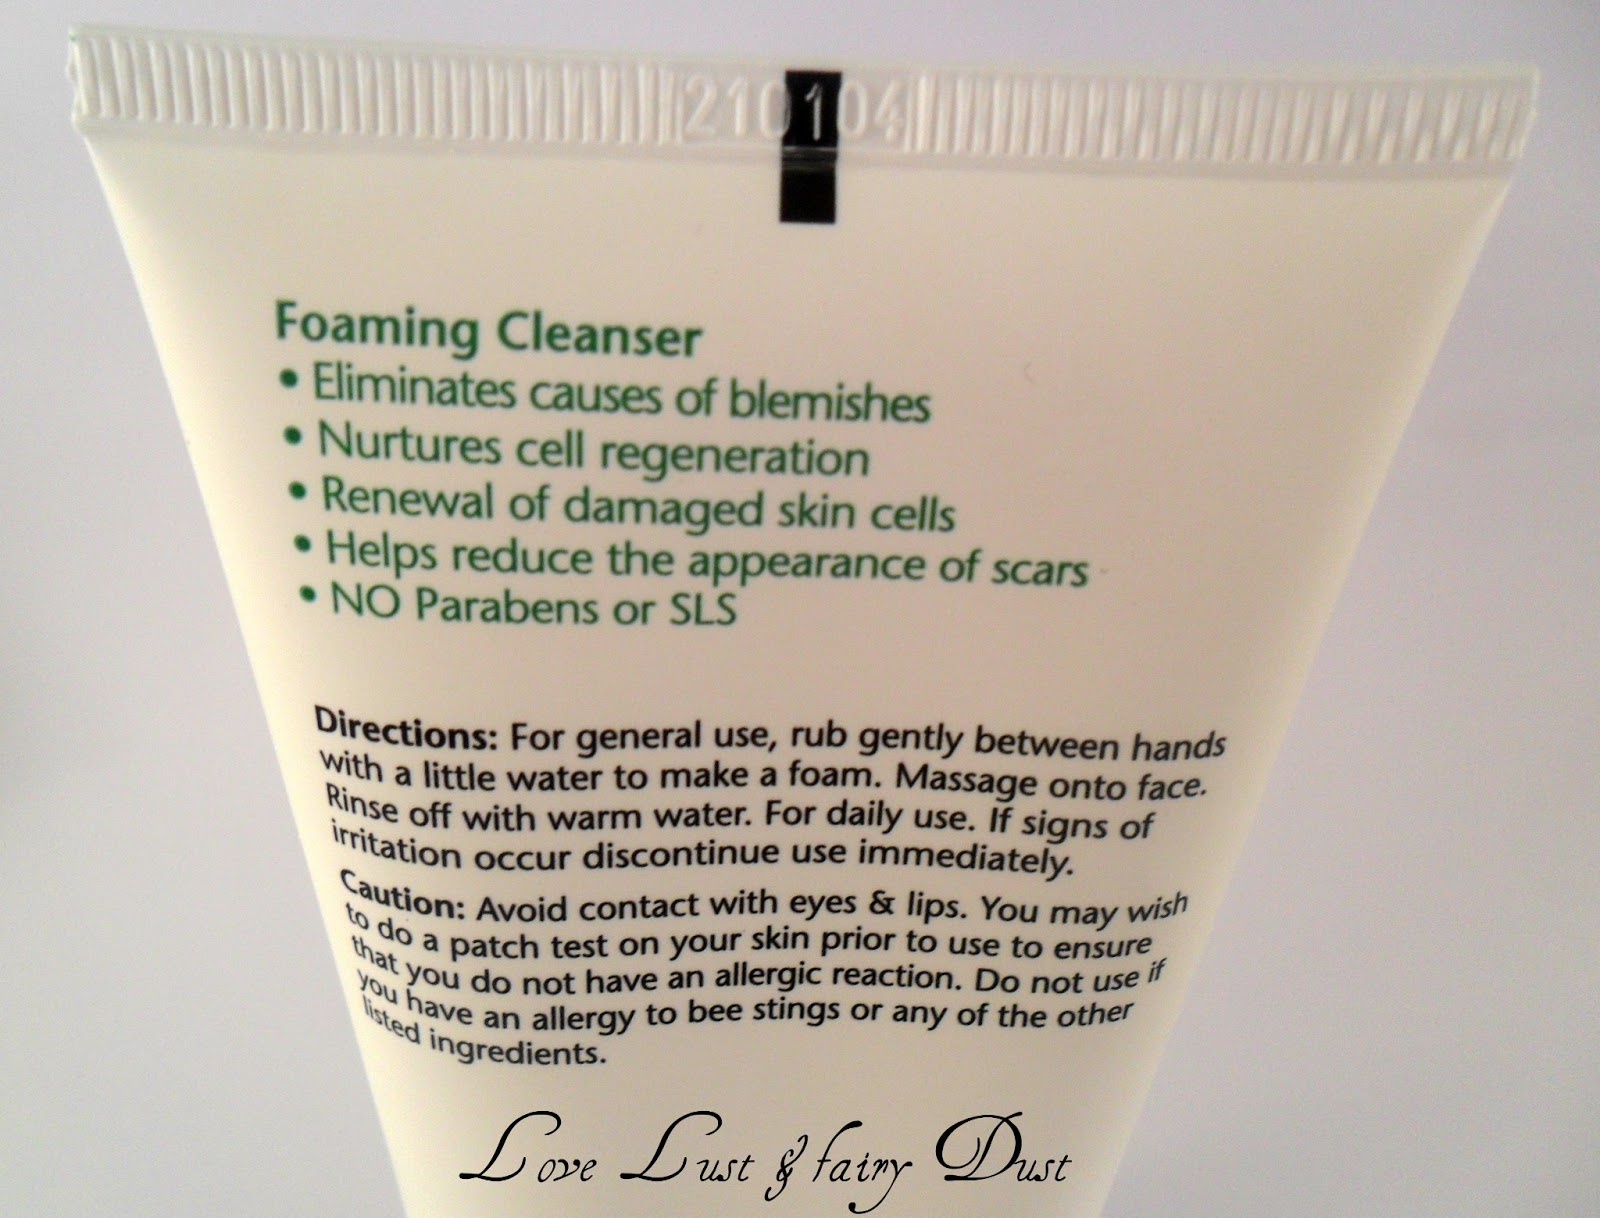 Manuka Doctor Apiclear Foaming Cleanser review